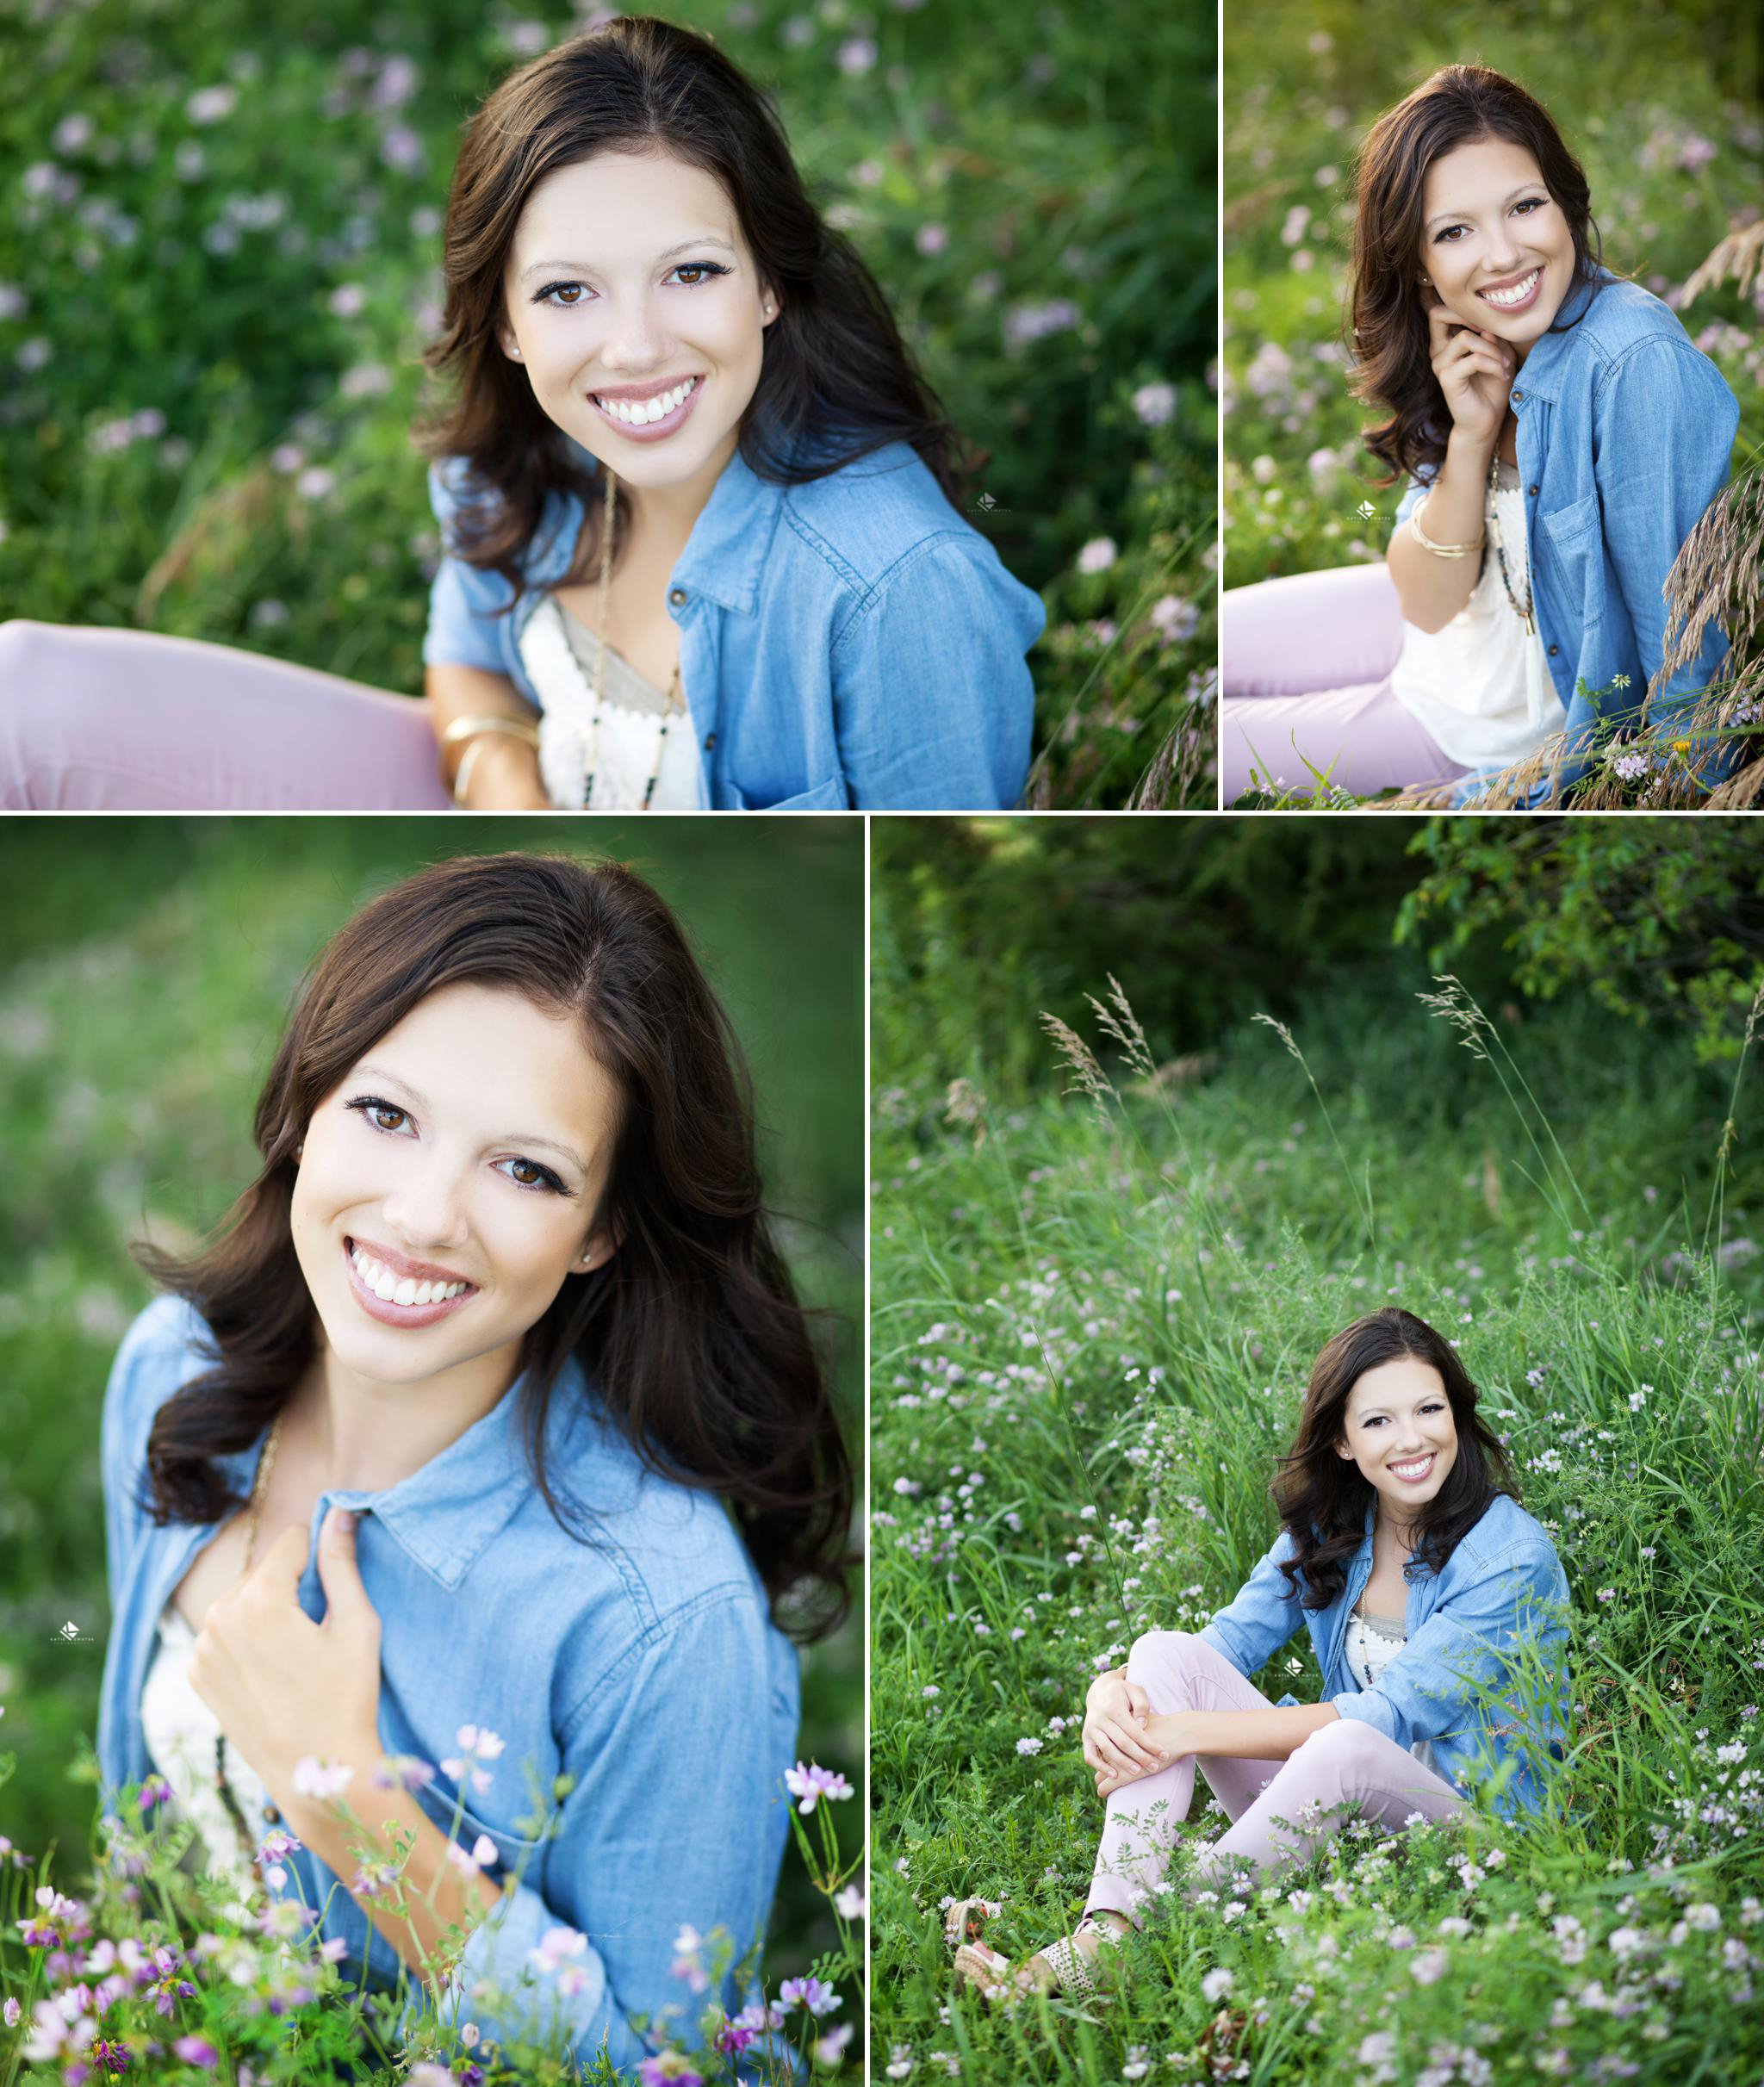 Flower Field Senior by Katie Swatek Photography | Pink Jeans Senior by Katie Swatek Photography